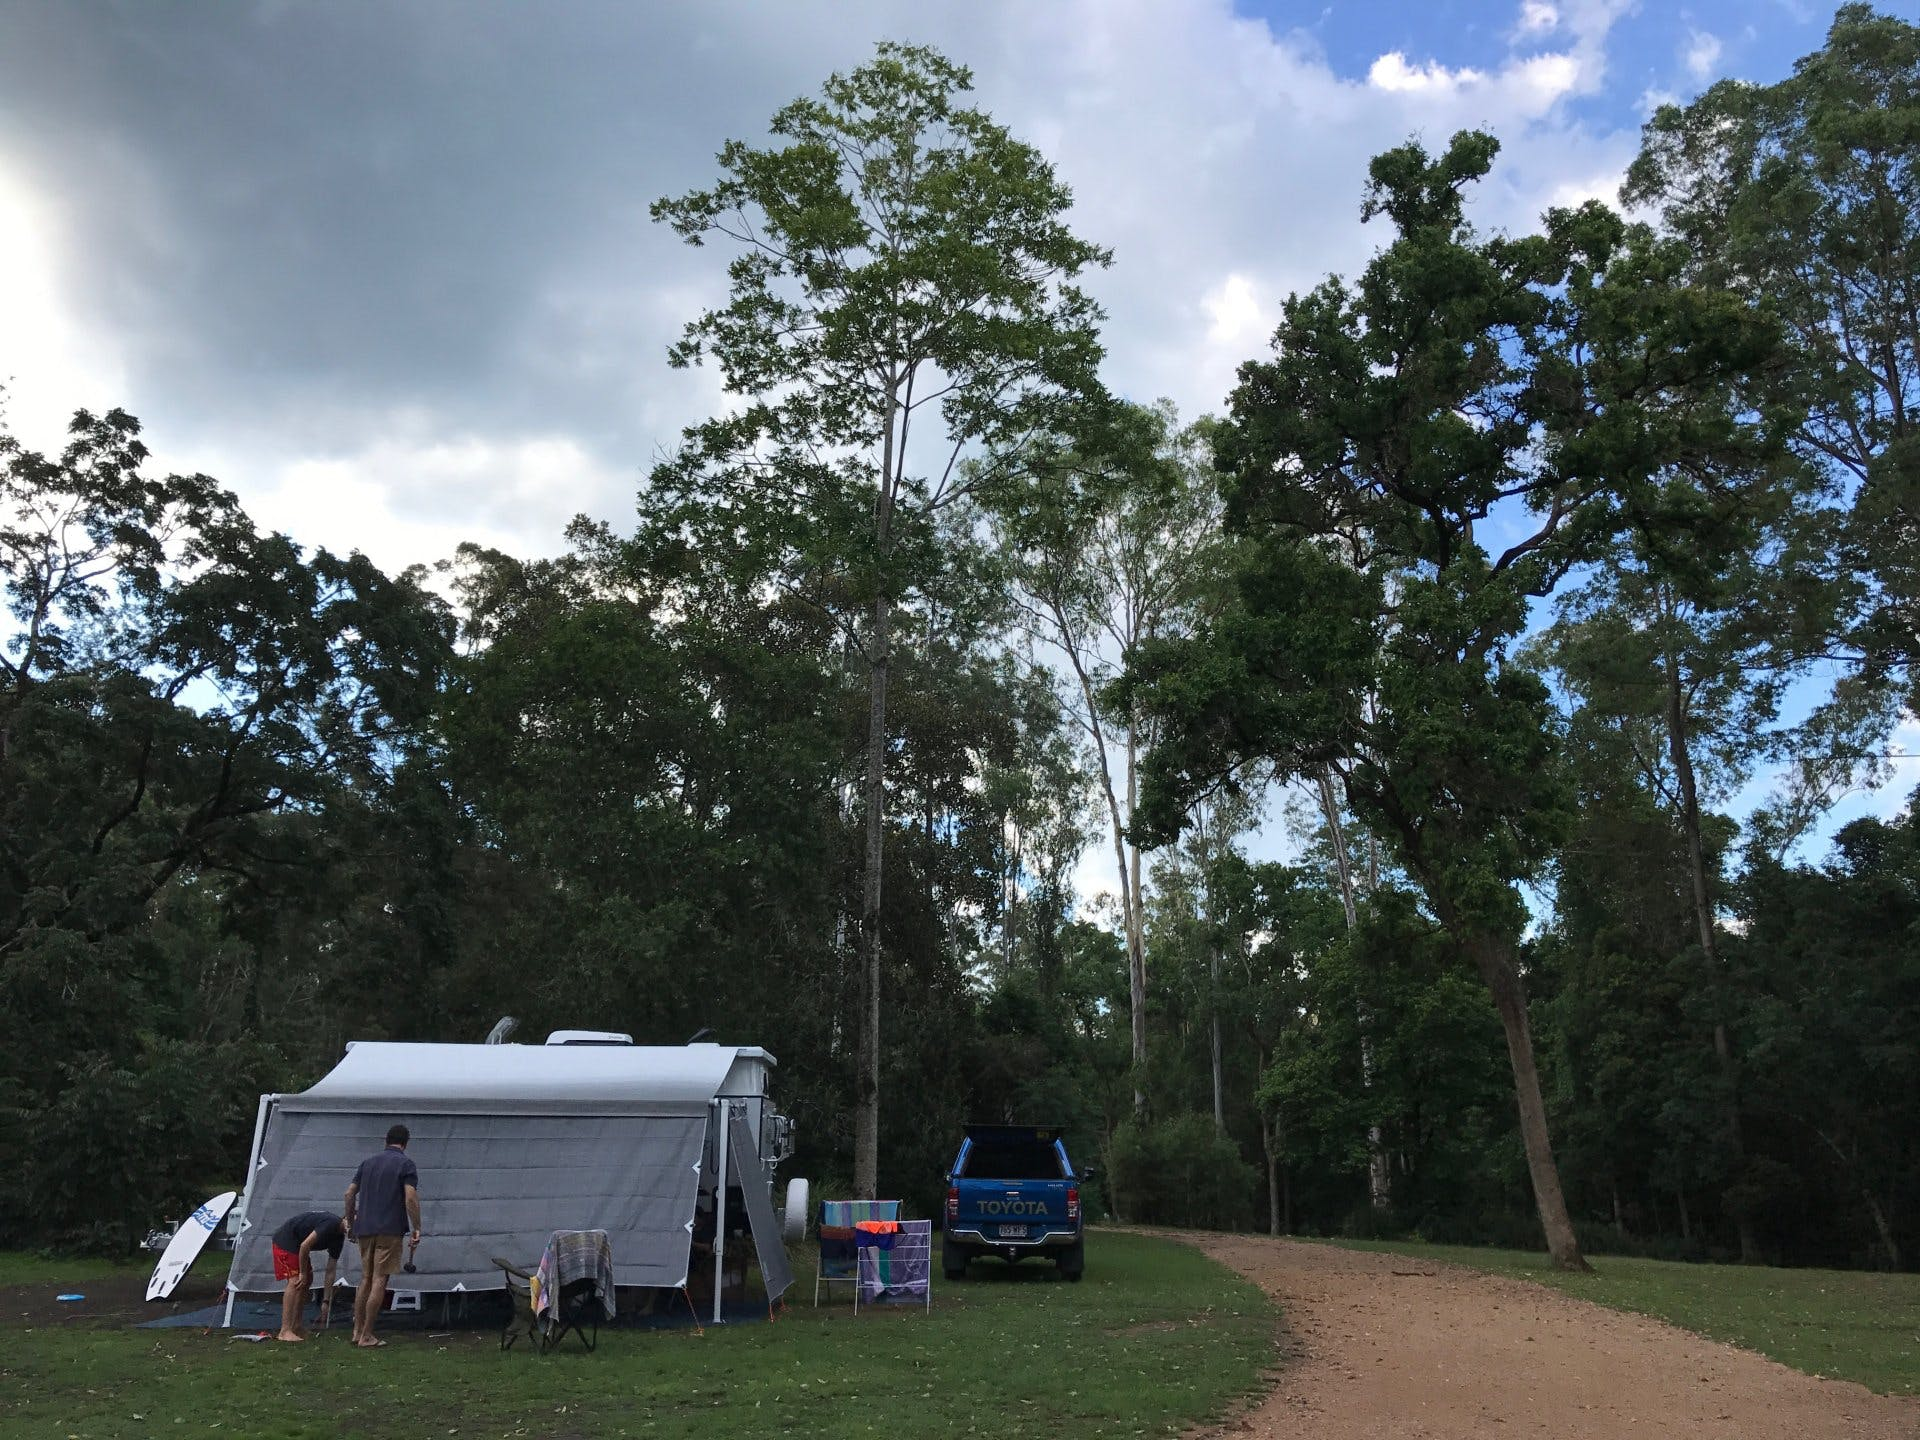 Setting up camp at Charlie Moreland Campground, QLD site 248 in Camps 10.